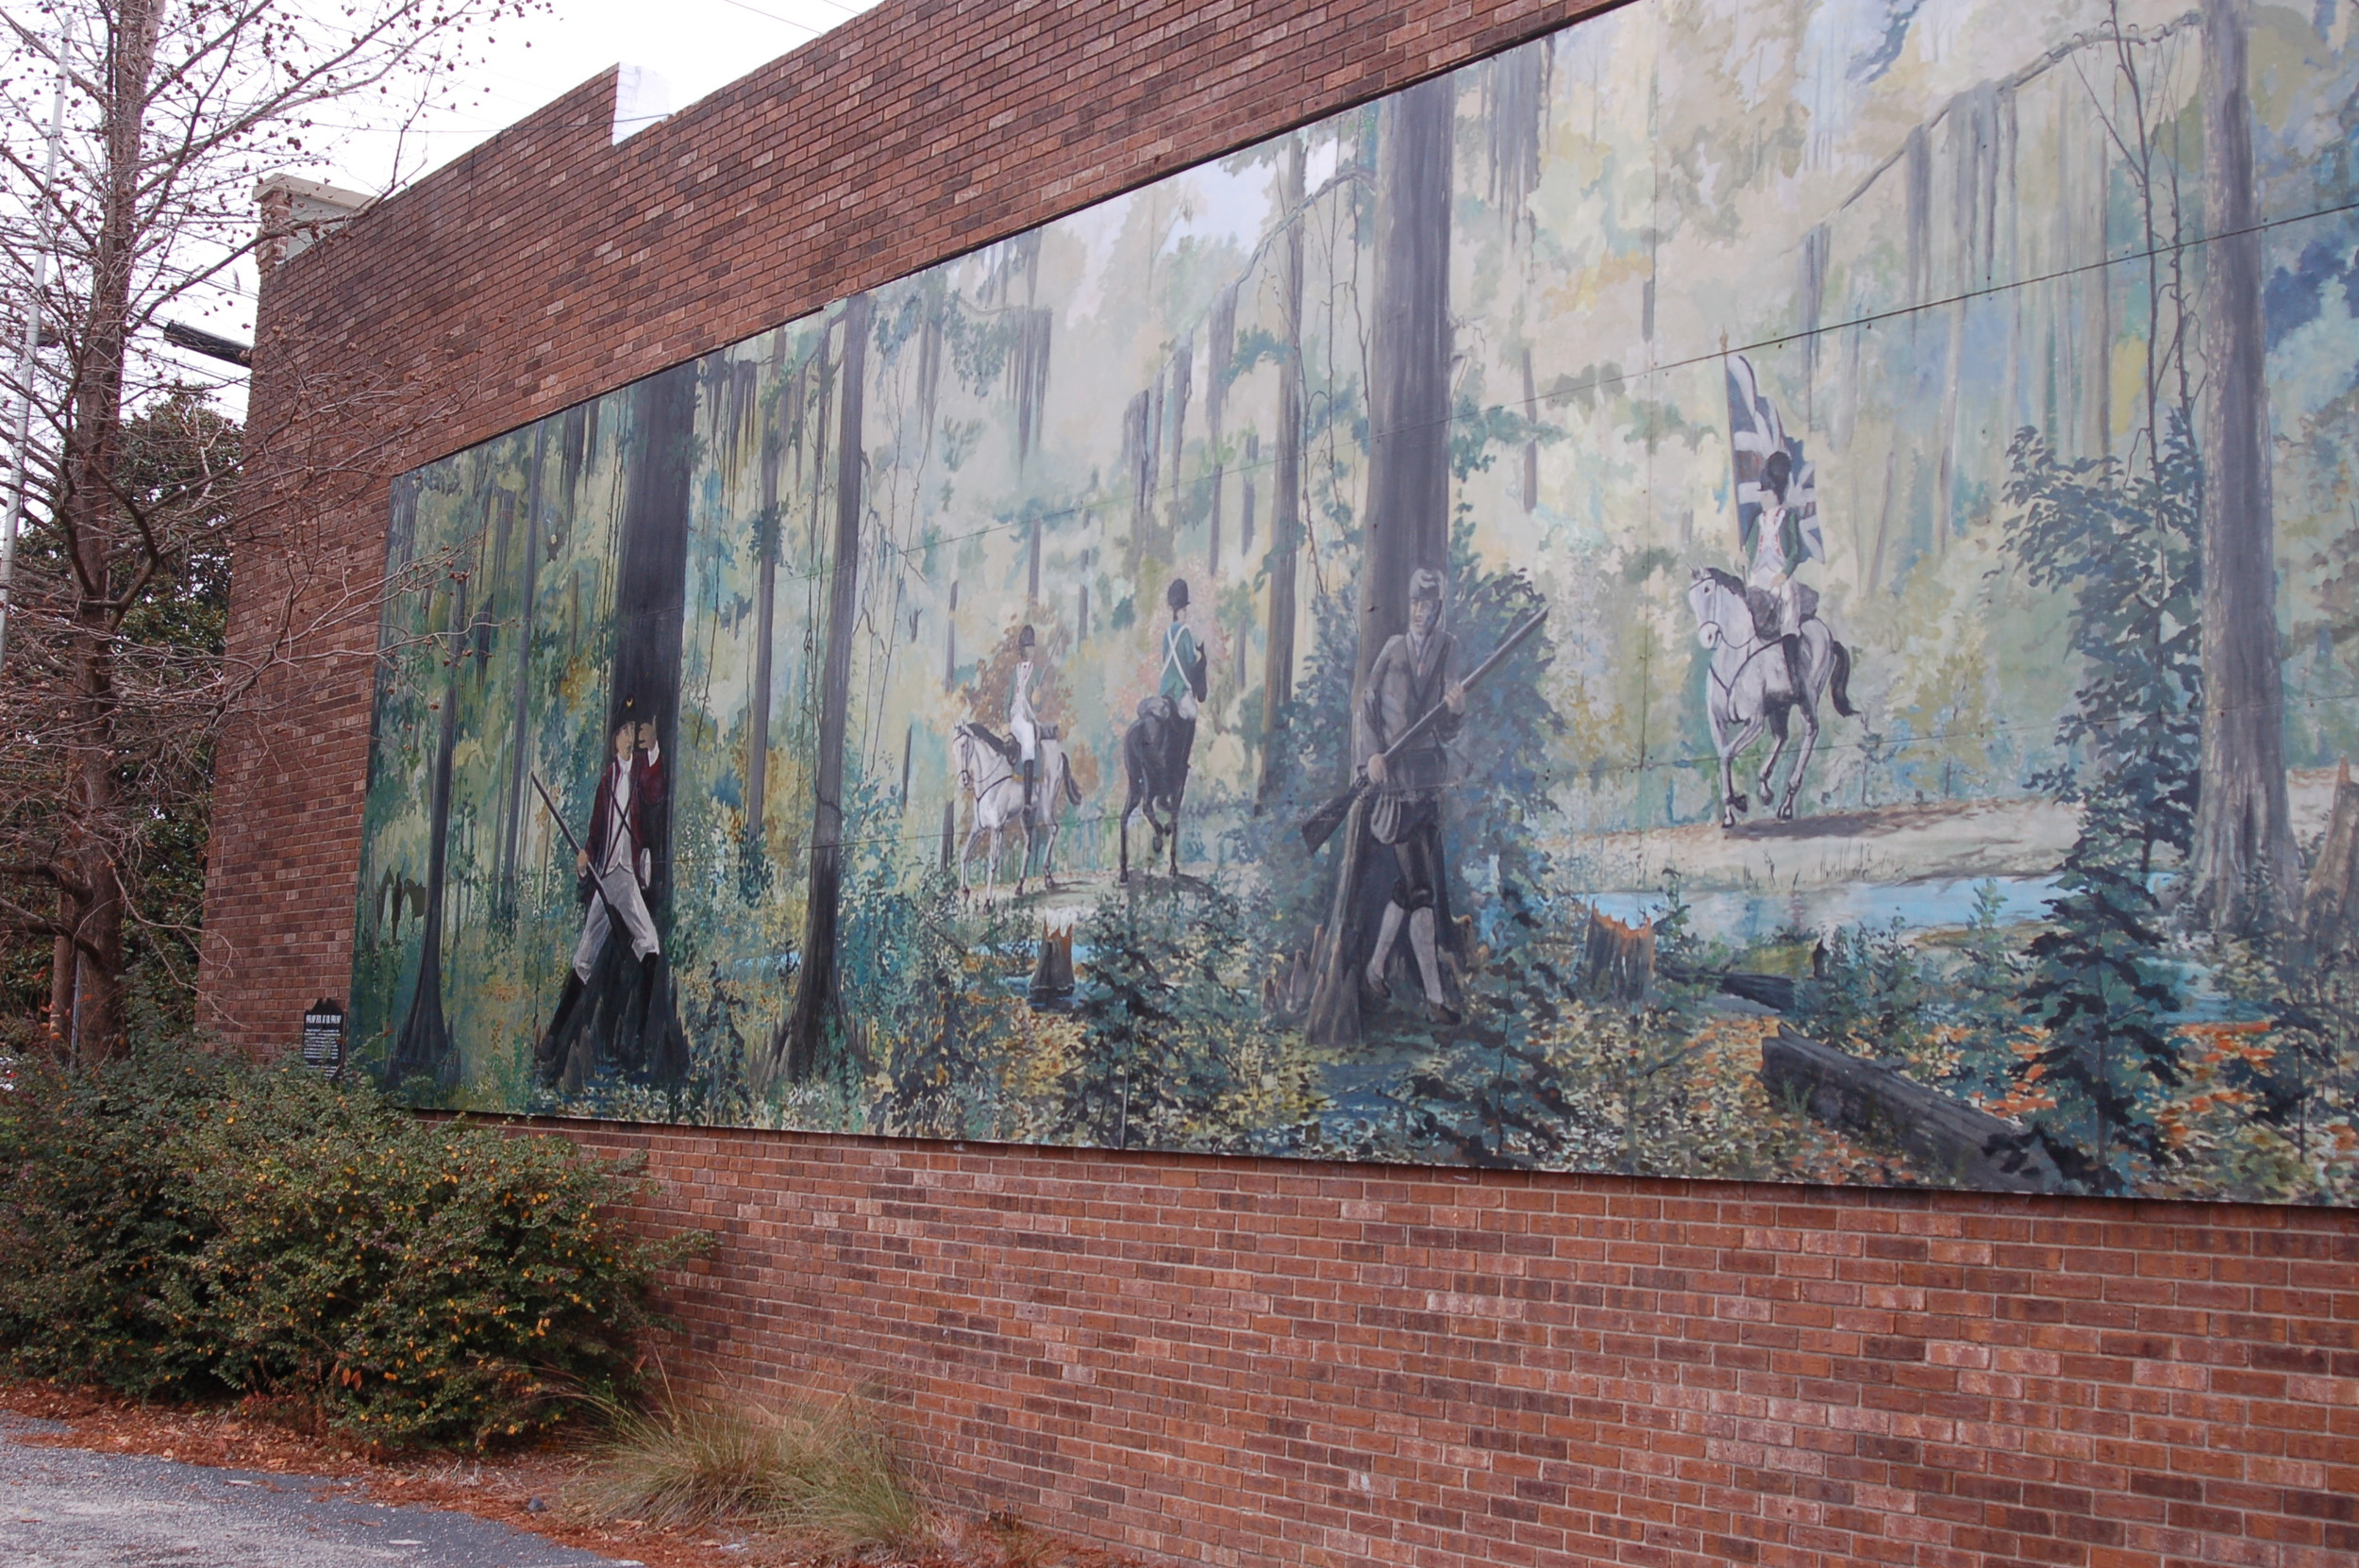 The first mural in Clarendon County was completed in 2001. The mural is on the Manning Fire Department building and depicts a battle scene from the American Revolutionary War. The mural was painted by Stateburg resident Will Anderson in 2001.